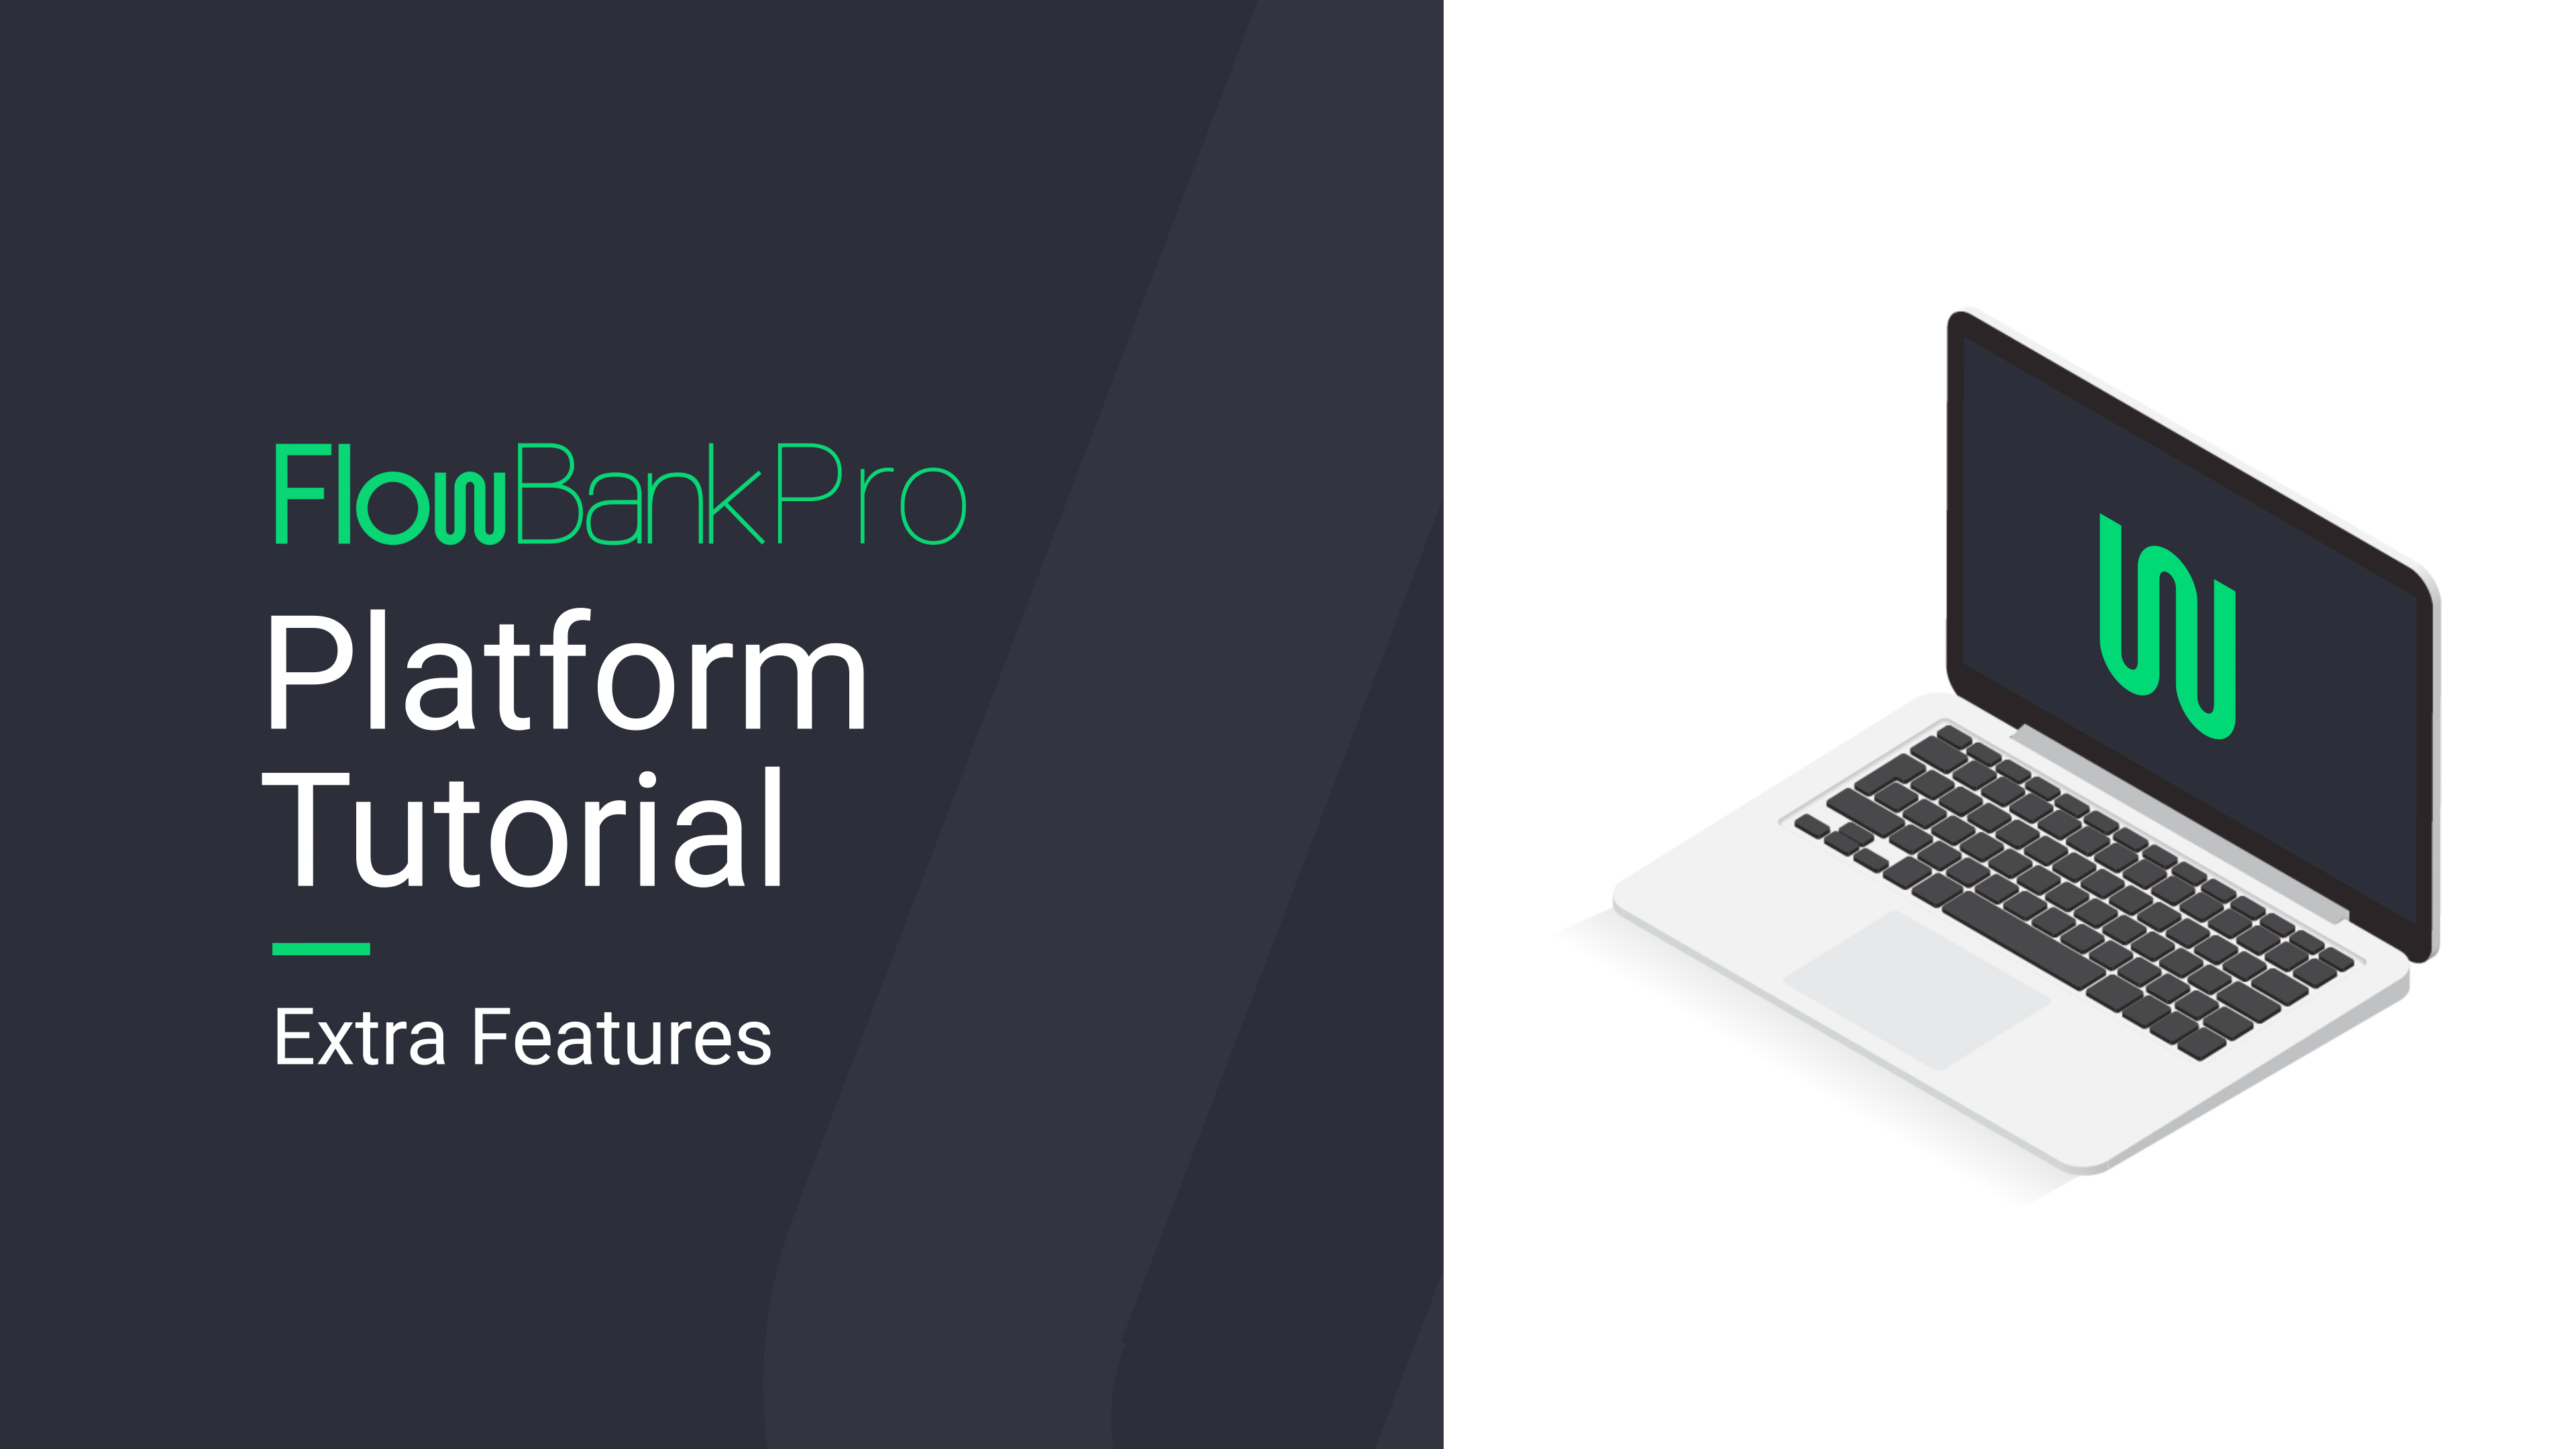 FlowBank Pro Platform Tutorial - Advanced Features video